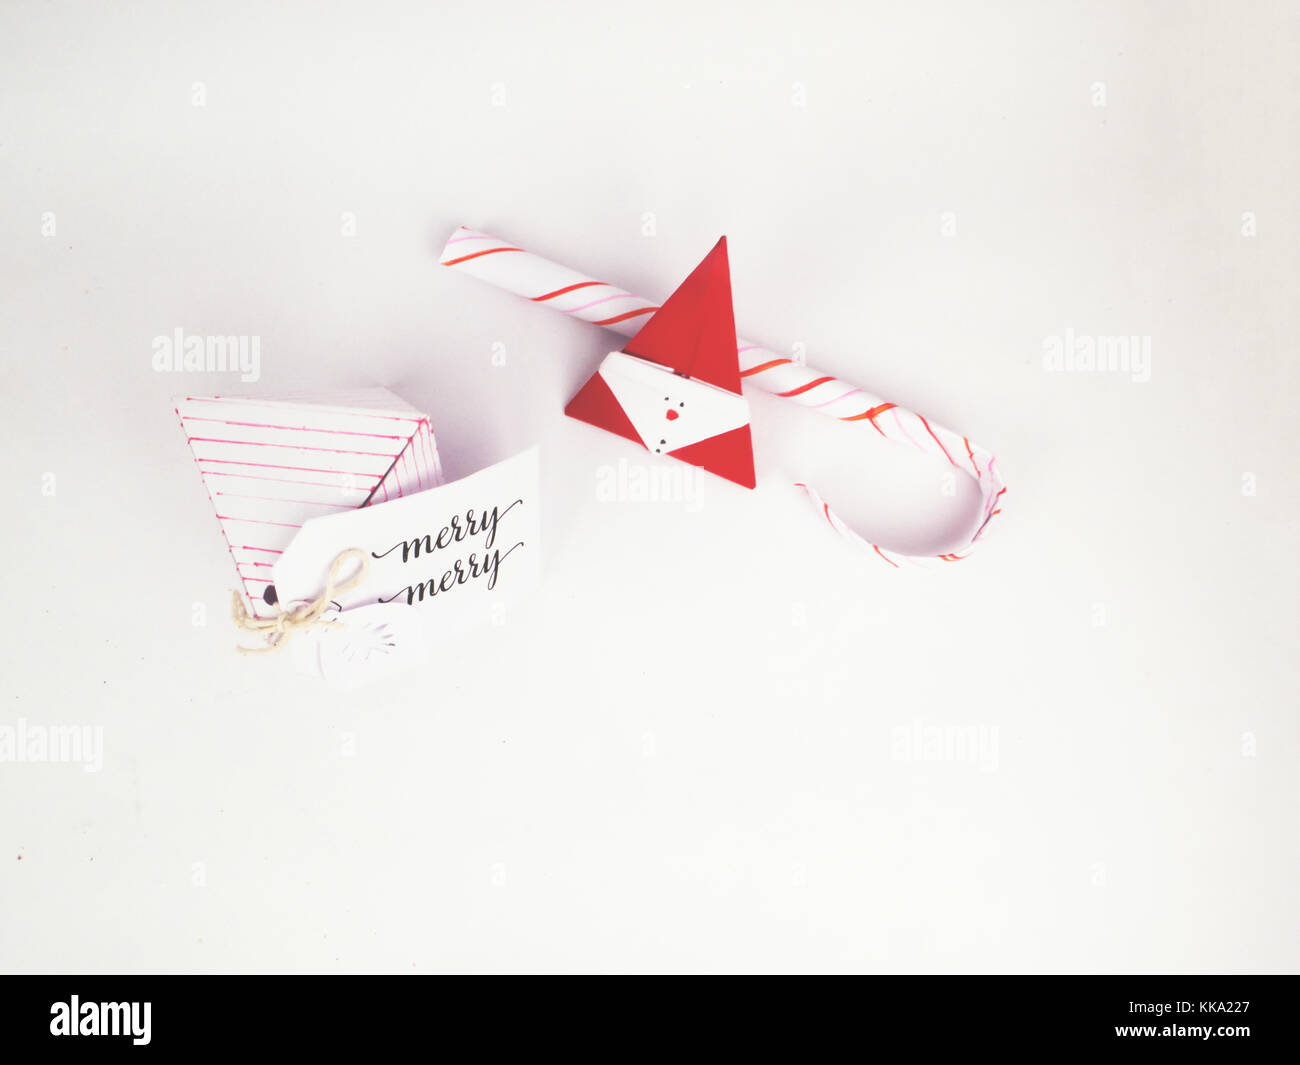 Christmas Decoration with diamond box with candy canes for holidays best background image for Holiday invitation - Stock Image